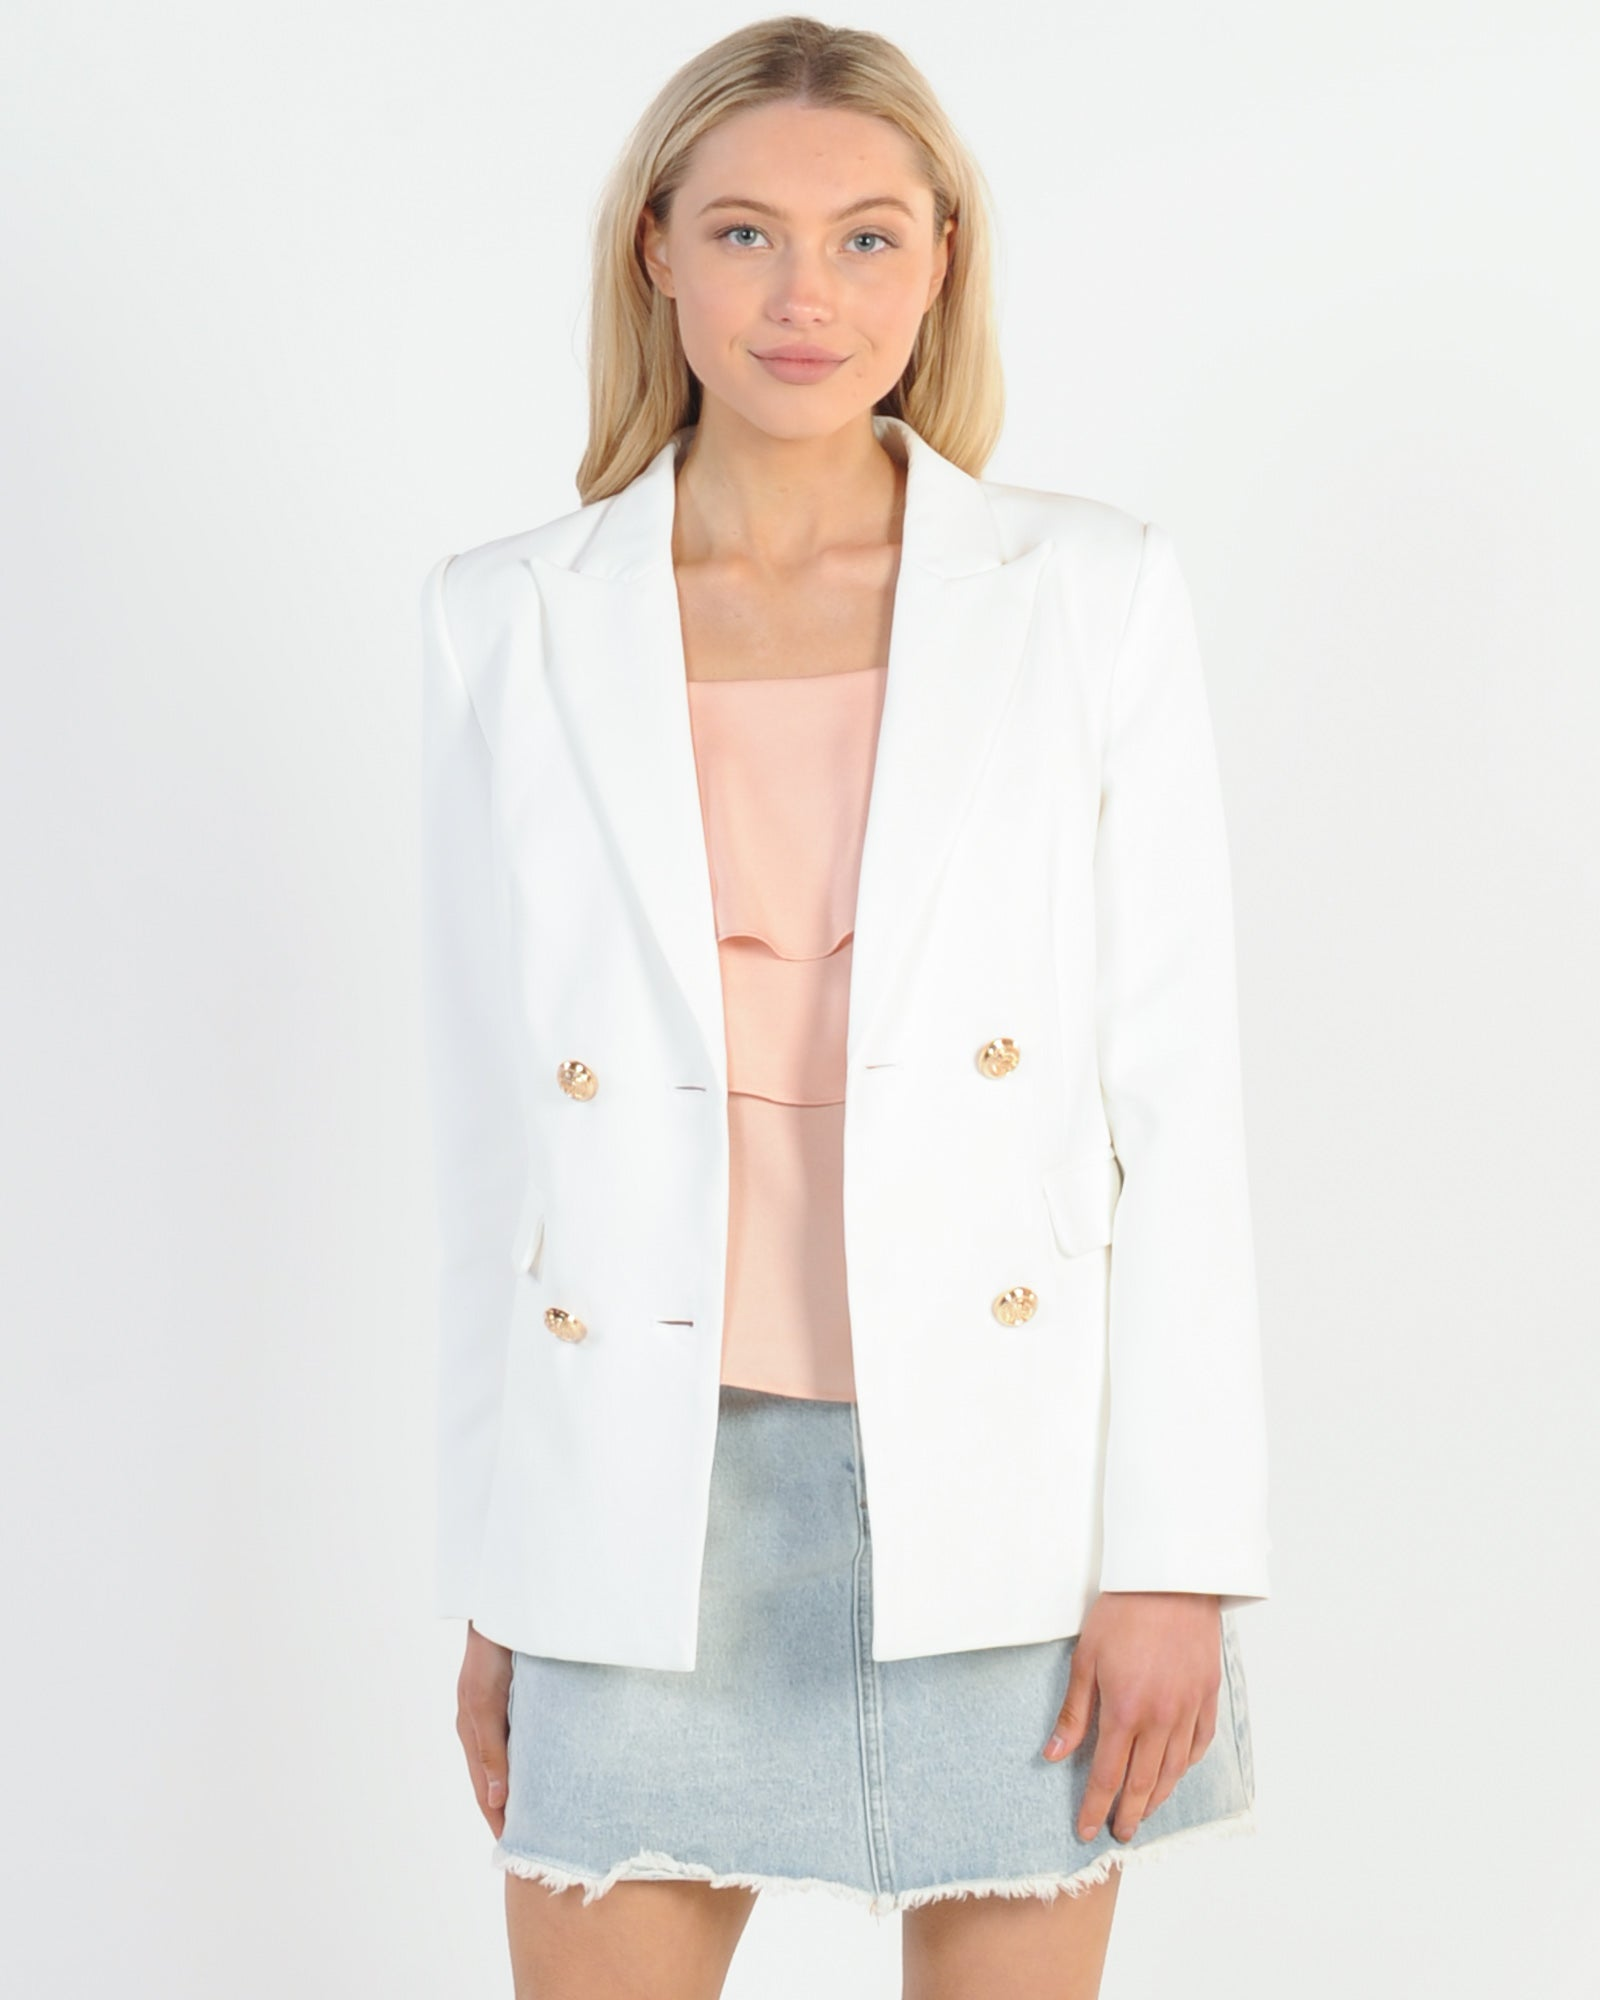 Madison The Label Kendra Blazer - White